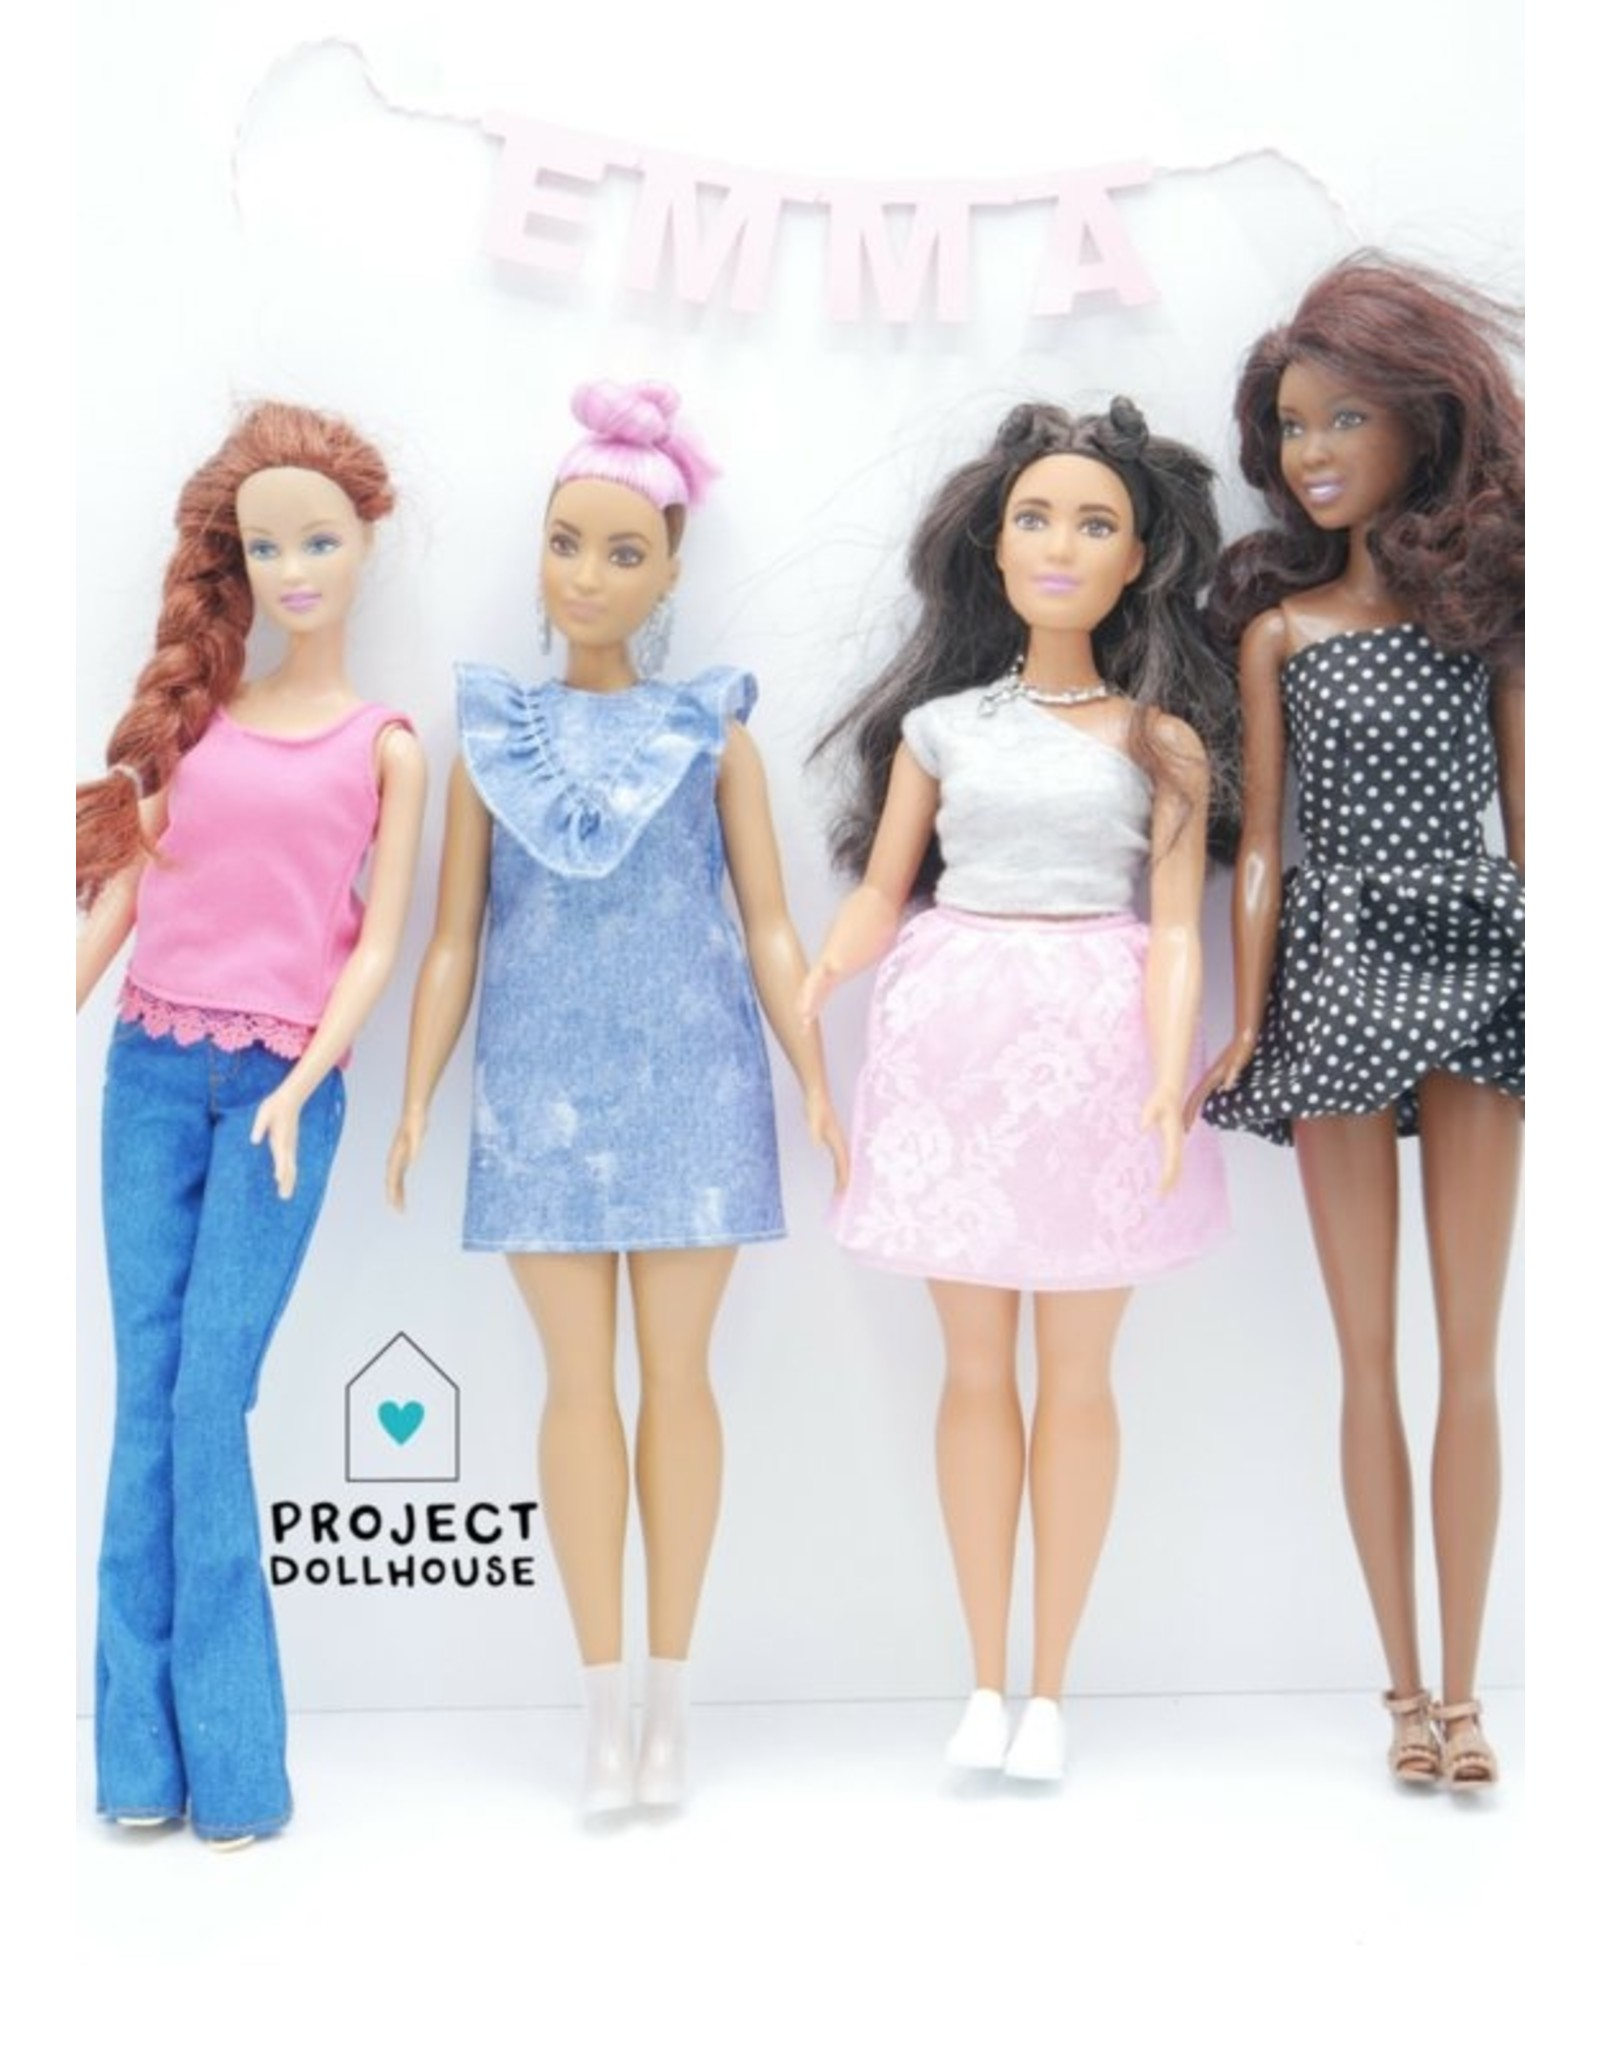 Project Dollhouse  Name garland Barbie scale